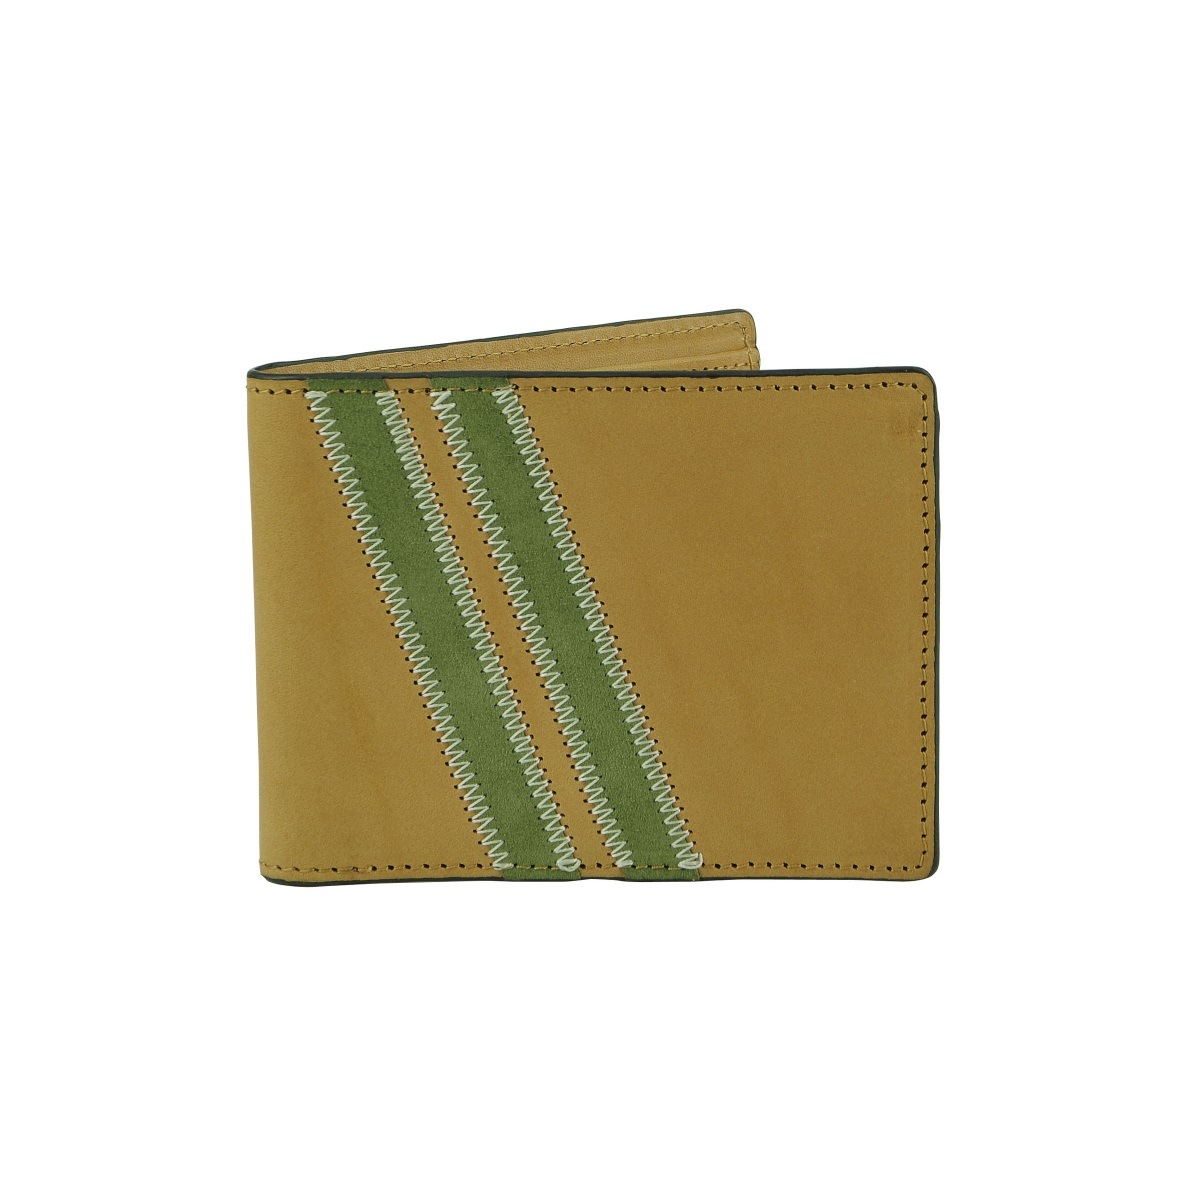 J.FOLD Zig Zag Roadster Leather Wallet - Tan